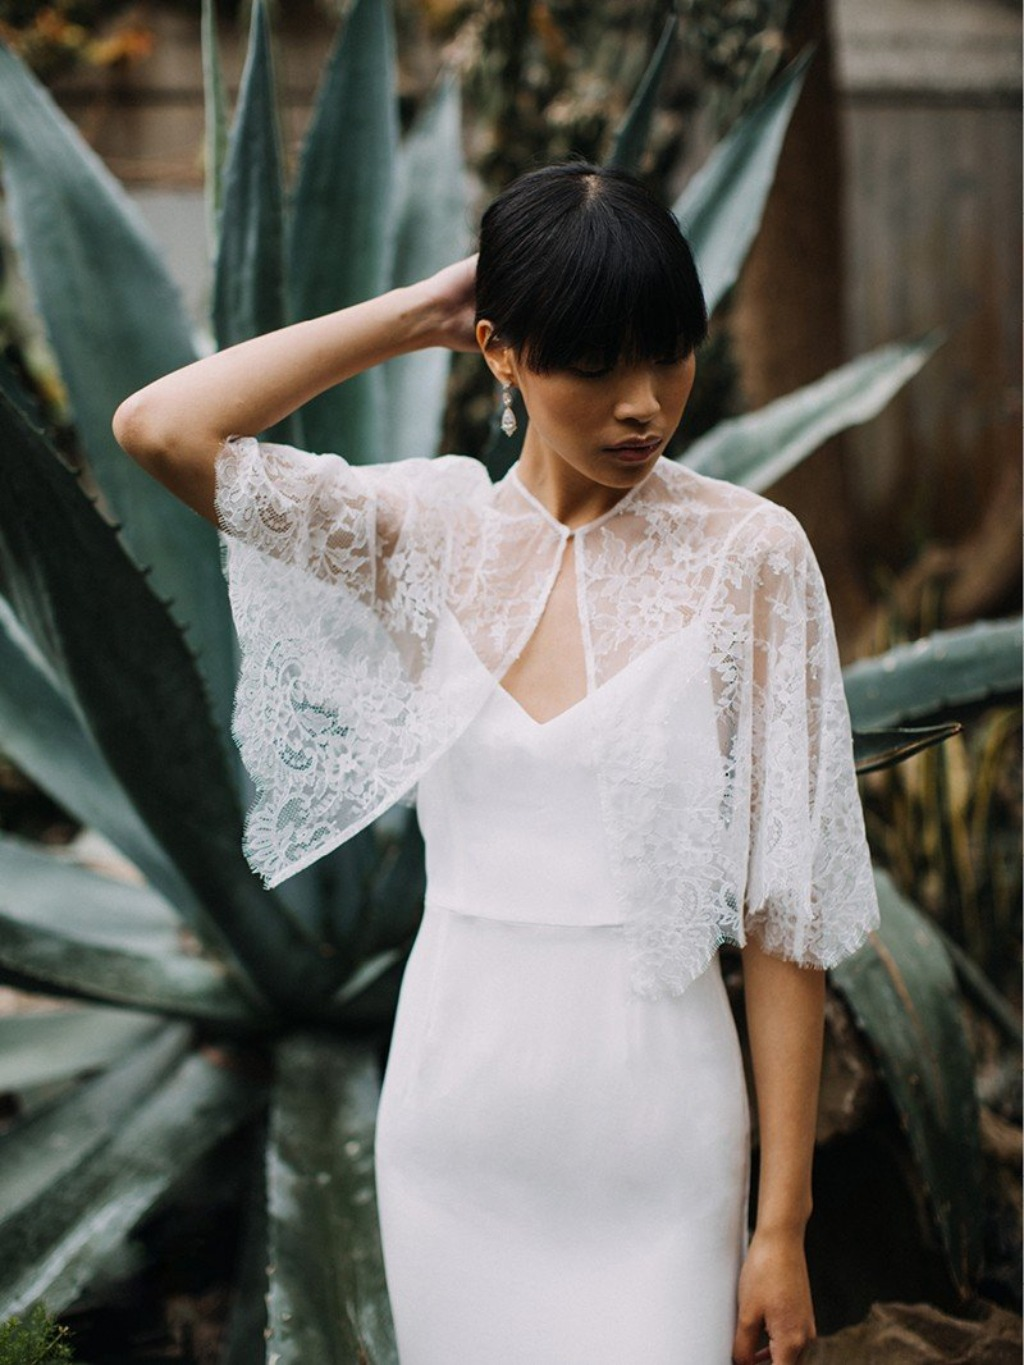 A modern take on a classic—lacy, feminine cover ups that add visual detail without compromising the view of your beautiful gown.